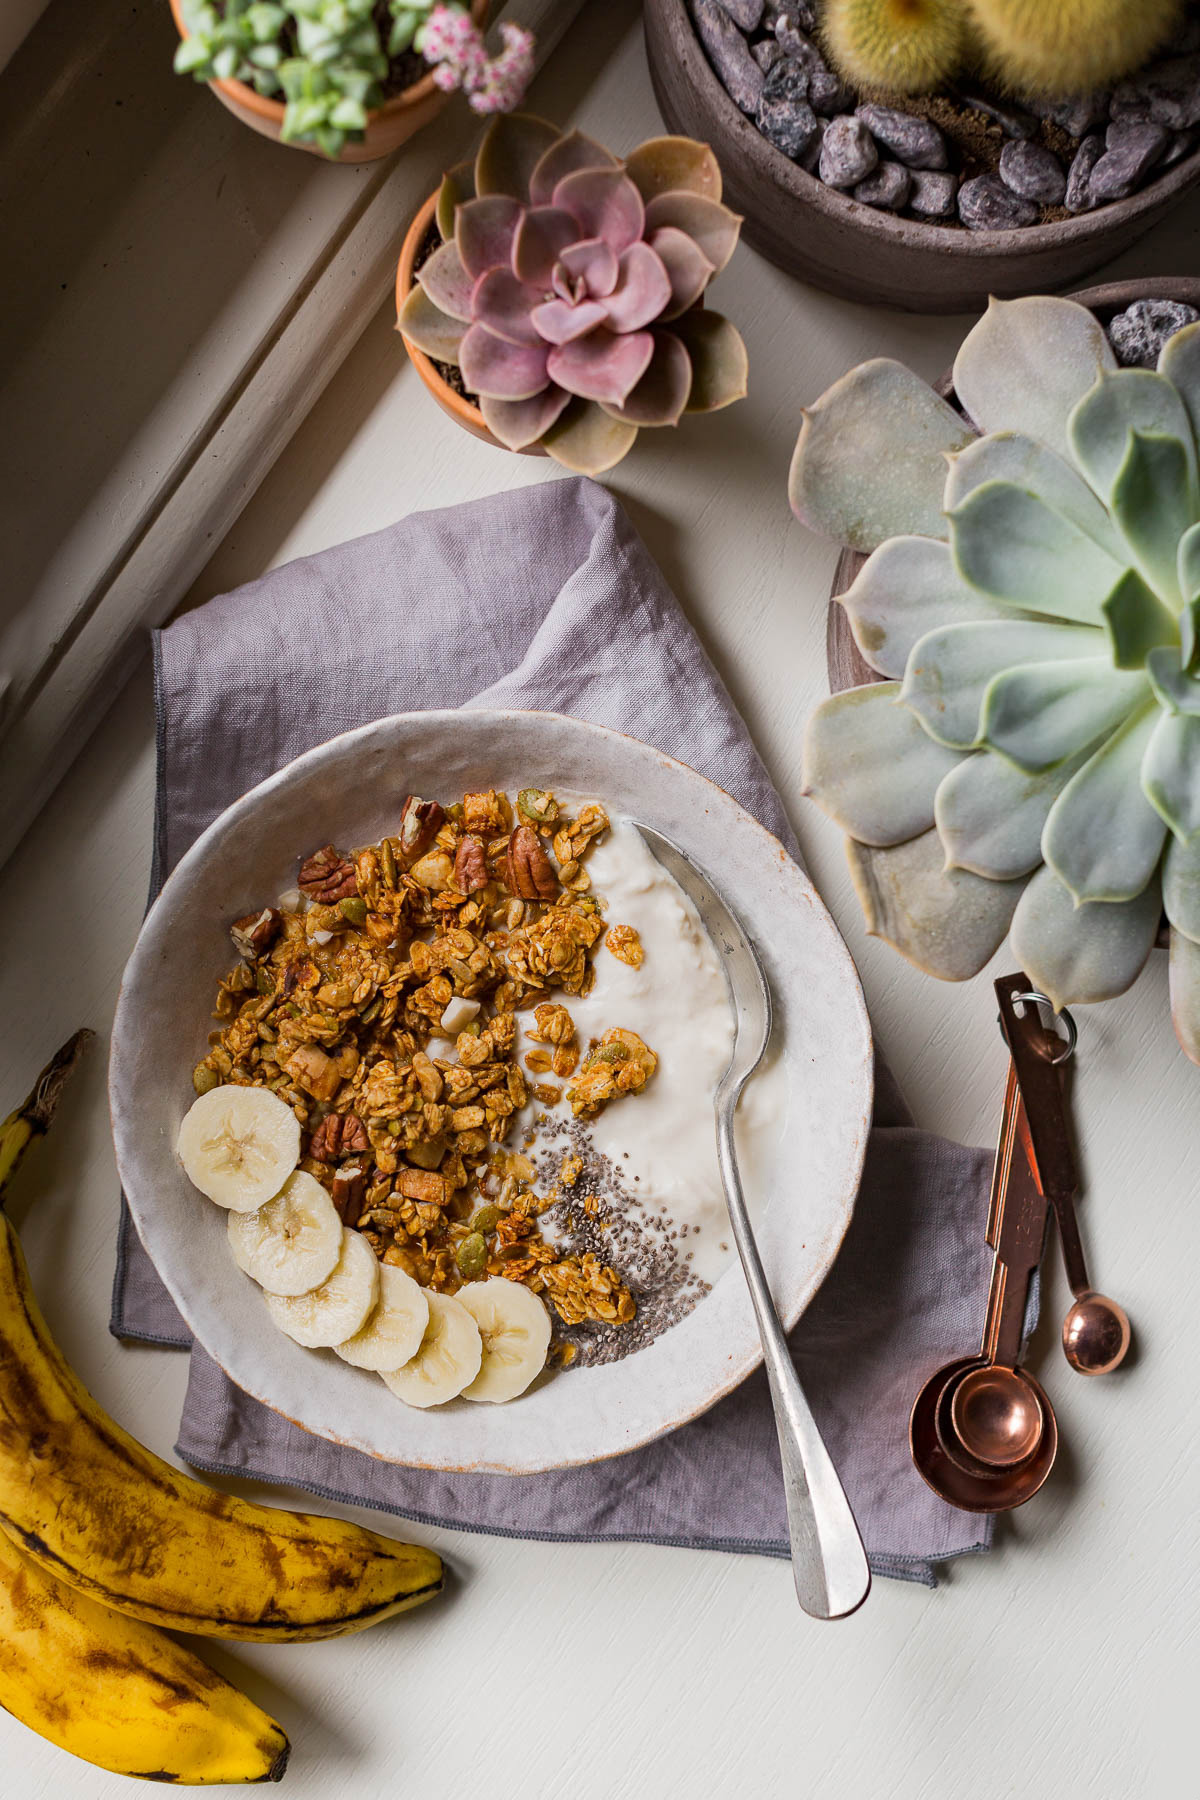 BANANA BREAD GRANOLA VEGAN SENZA GLUTINE con sciroppo d acero #granola light simple VEGAN glutenfree BANANA BREAD GRANOLA recipe